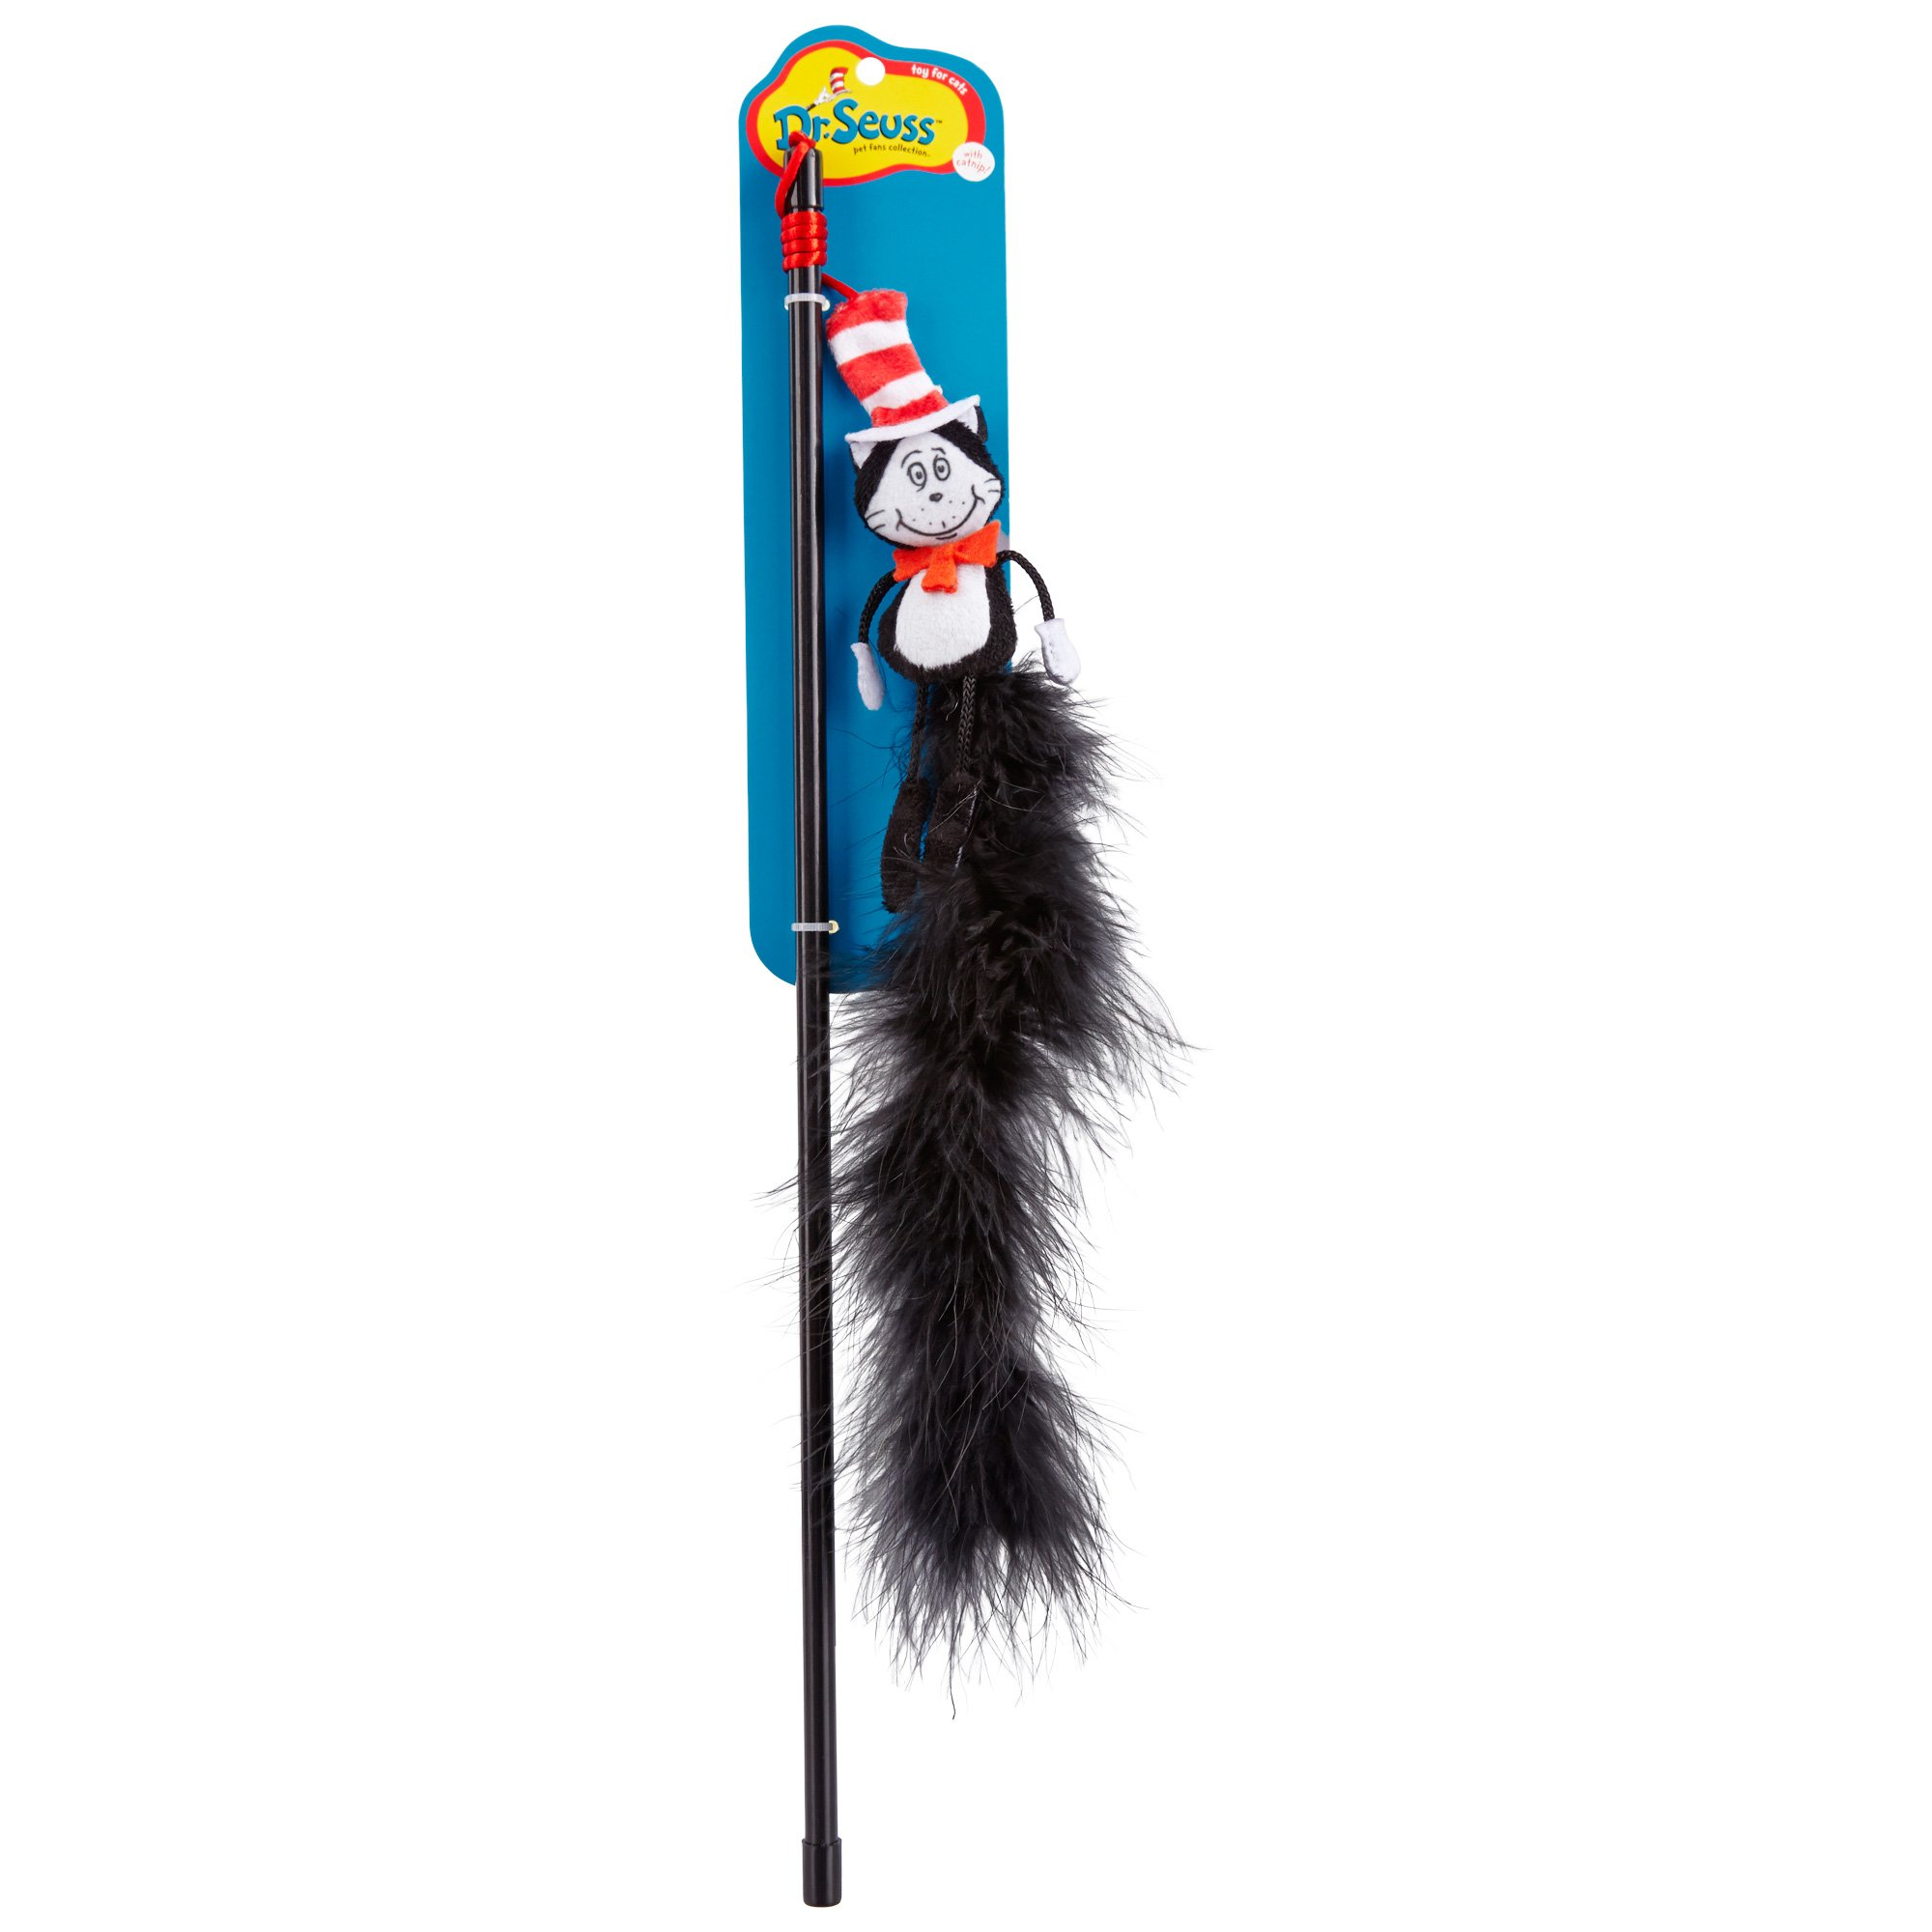 Dr. Seuss Cat in the Hat Teaser Toy for Cats